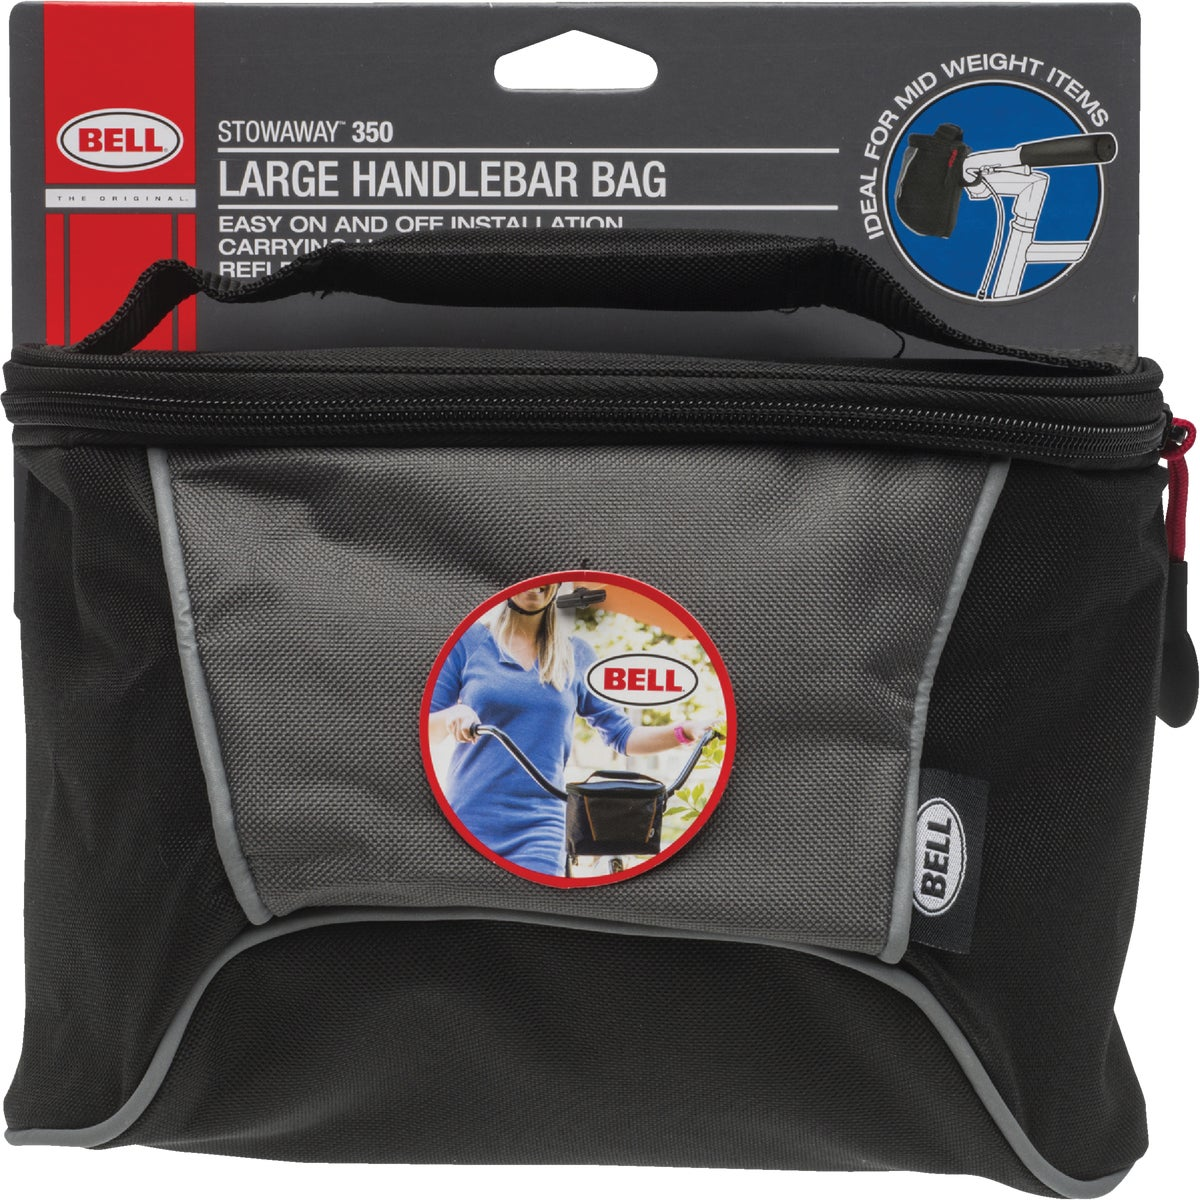 HANDLEBAR BAG - 7015840 by Bell Sports